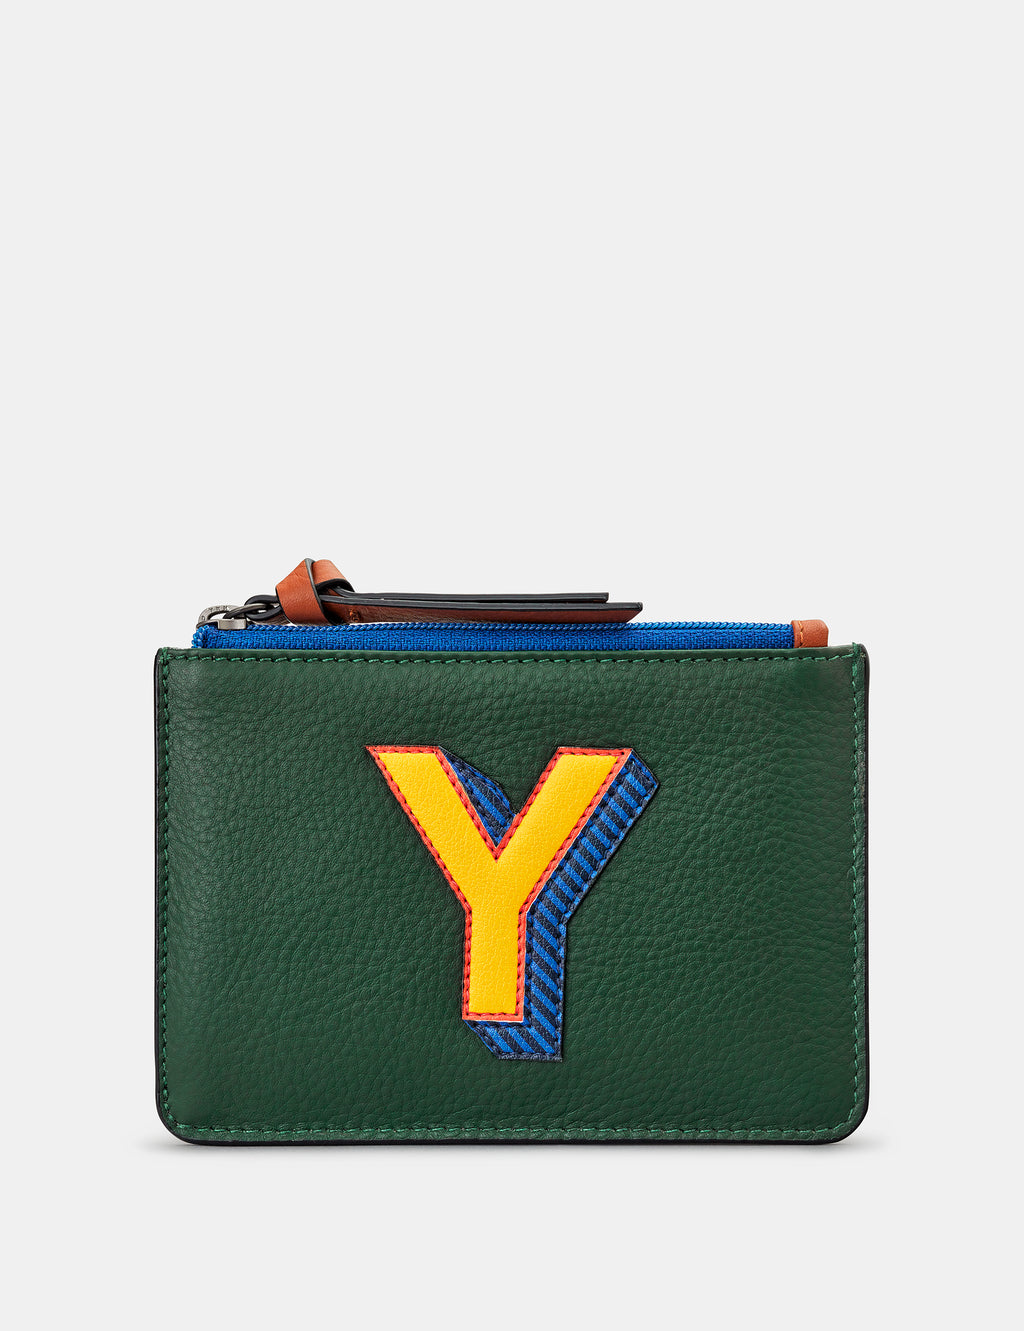 Y Initials Green Leather Zip Top Purse